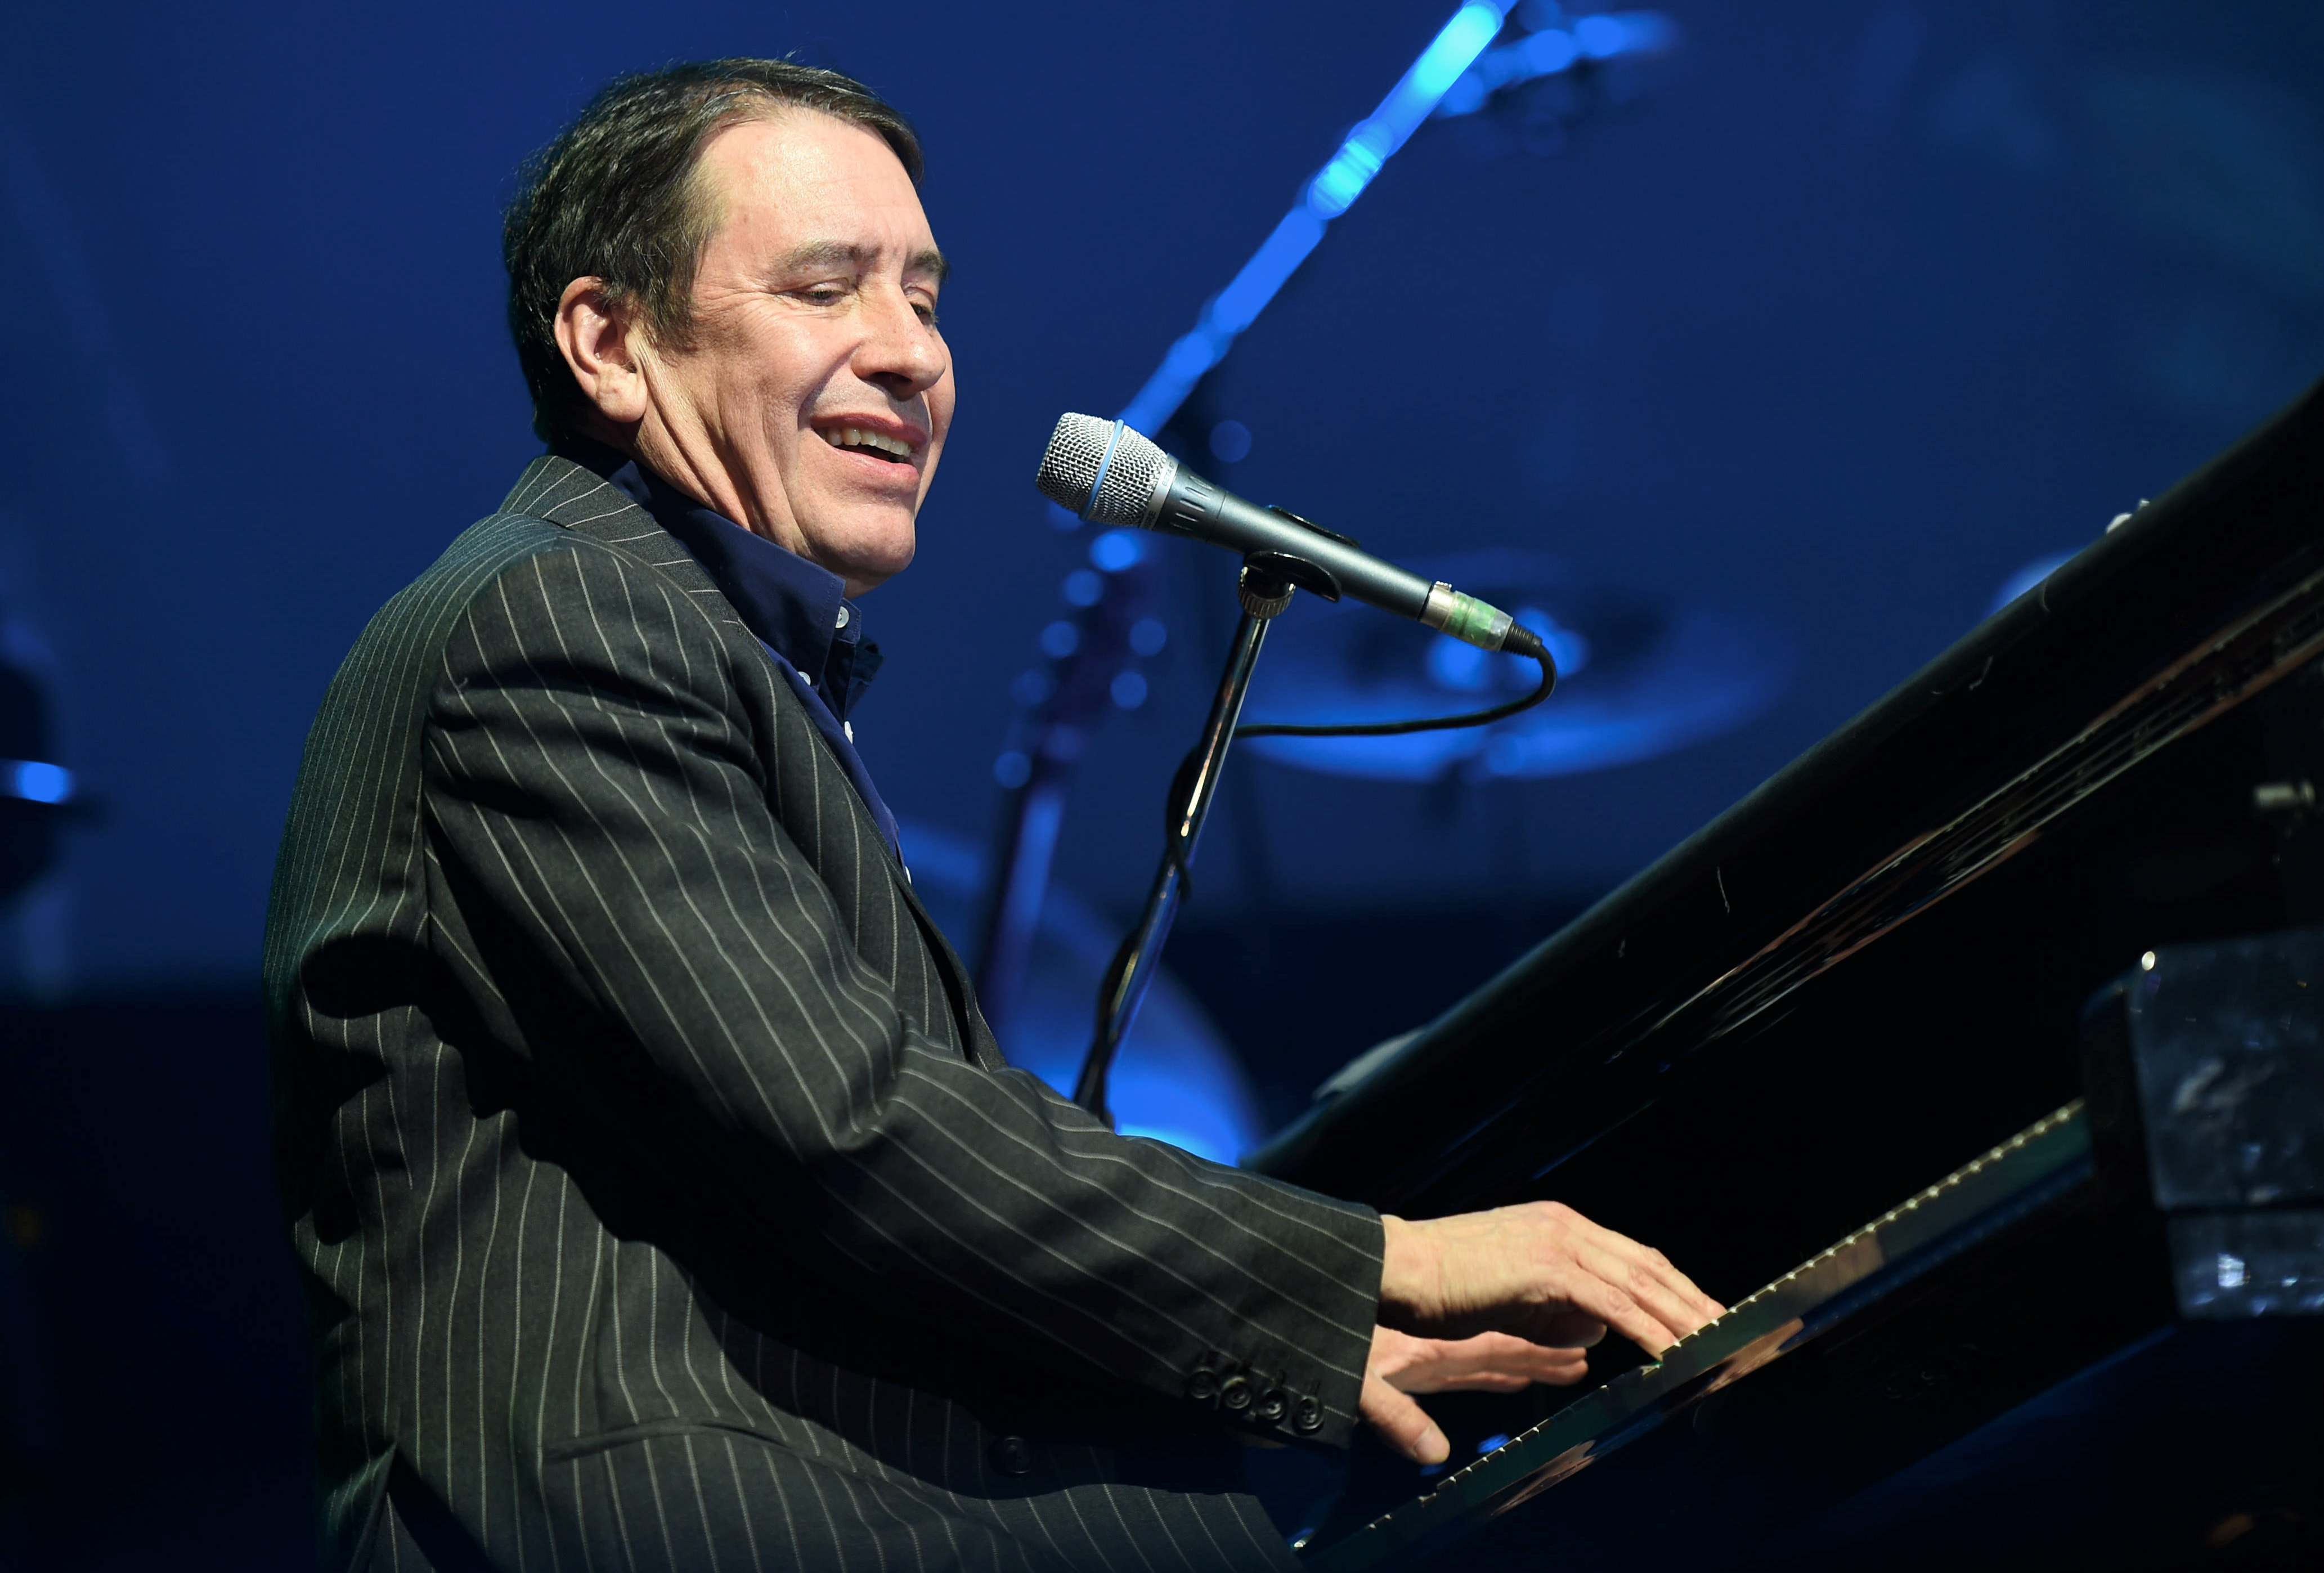 Jools Holland wowed the crowd at the AECC but fans were less impressed with umbrella restrictions as heavy rain fell.